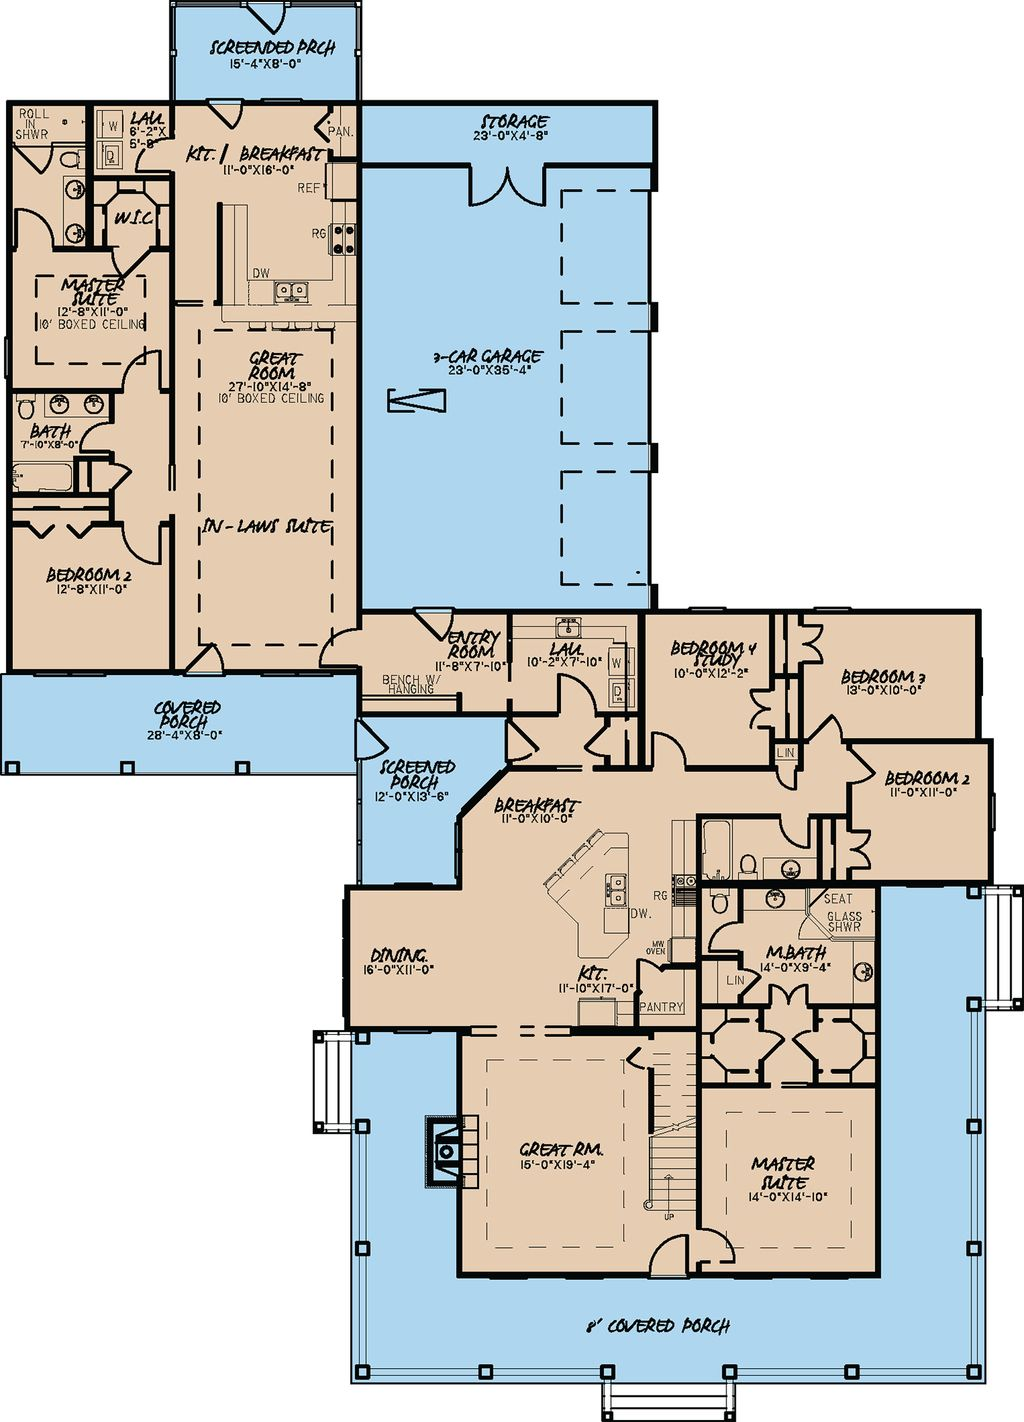 Farmhouse Style House Plan 6 Beds 4 Baths 3437 Sq Ft Plan 923 22 Farmhouse Style House Plans Family House Plans House Plans One Story